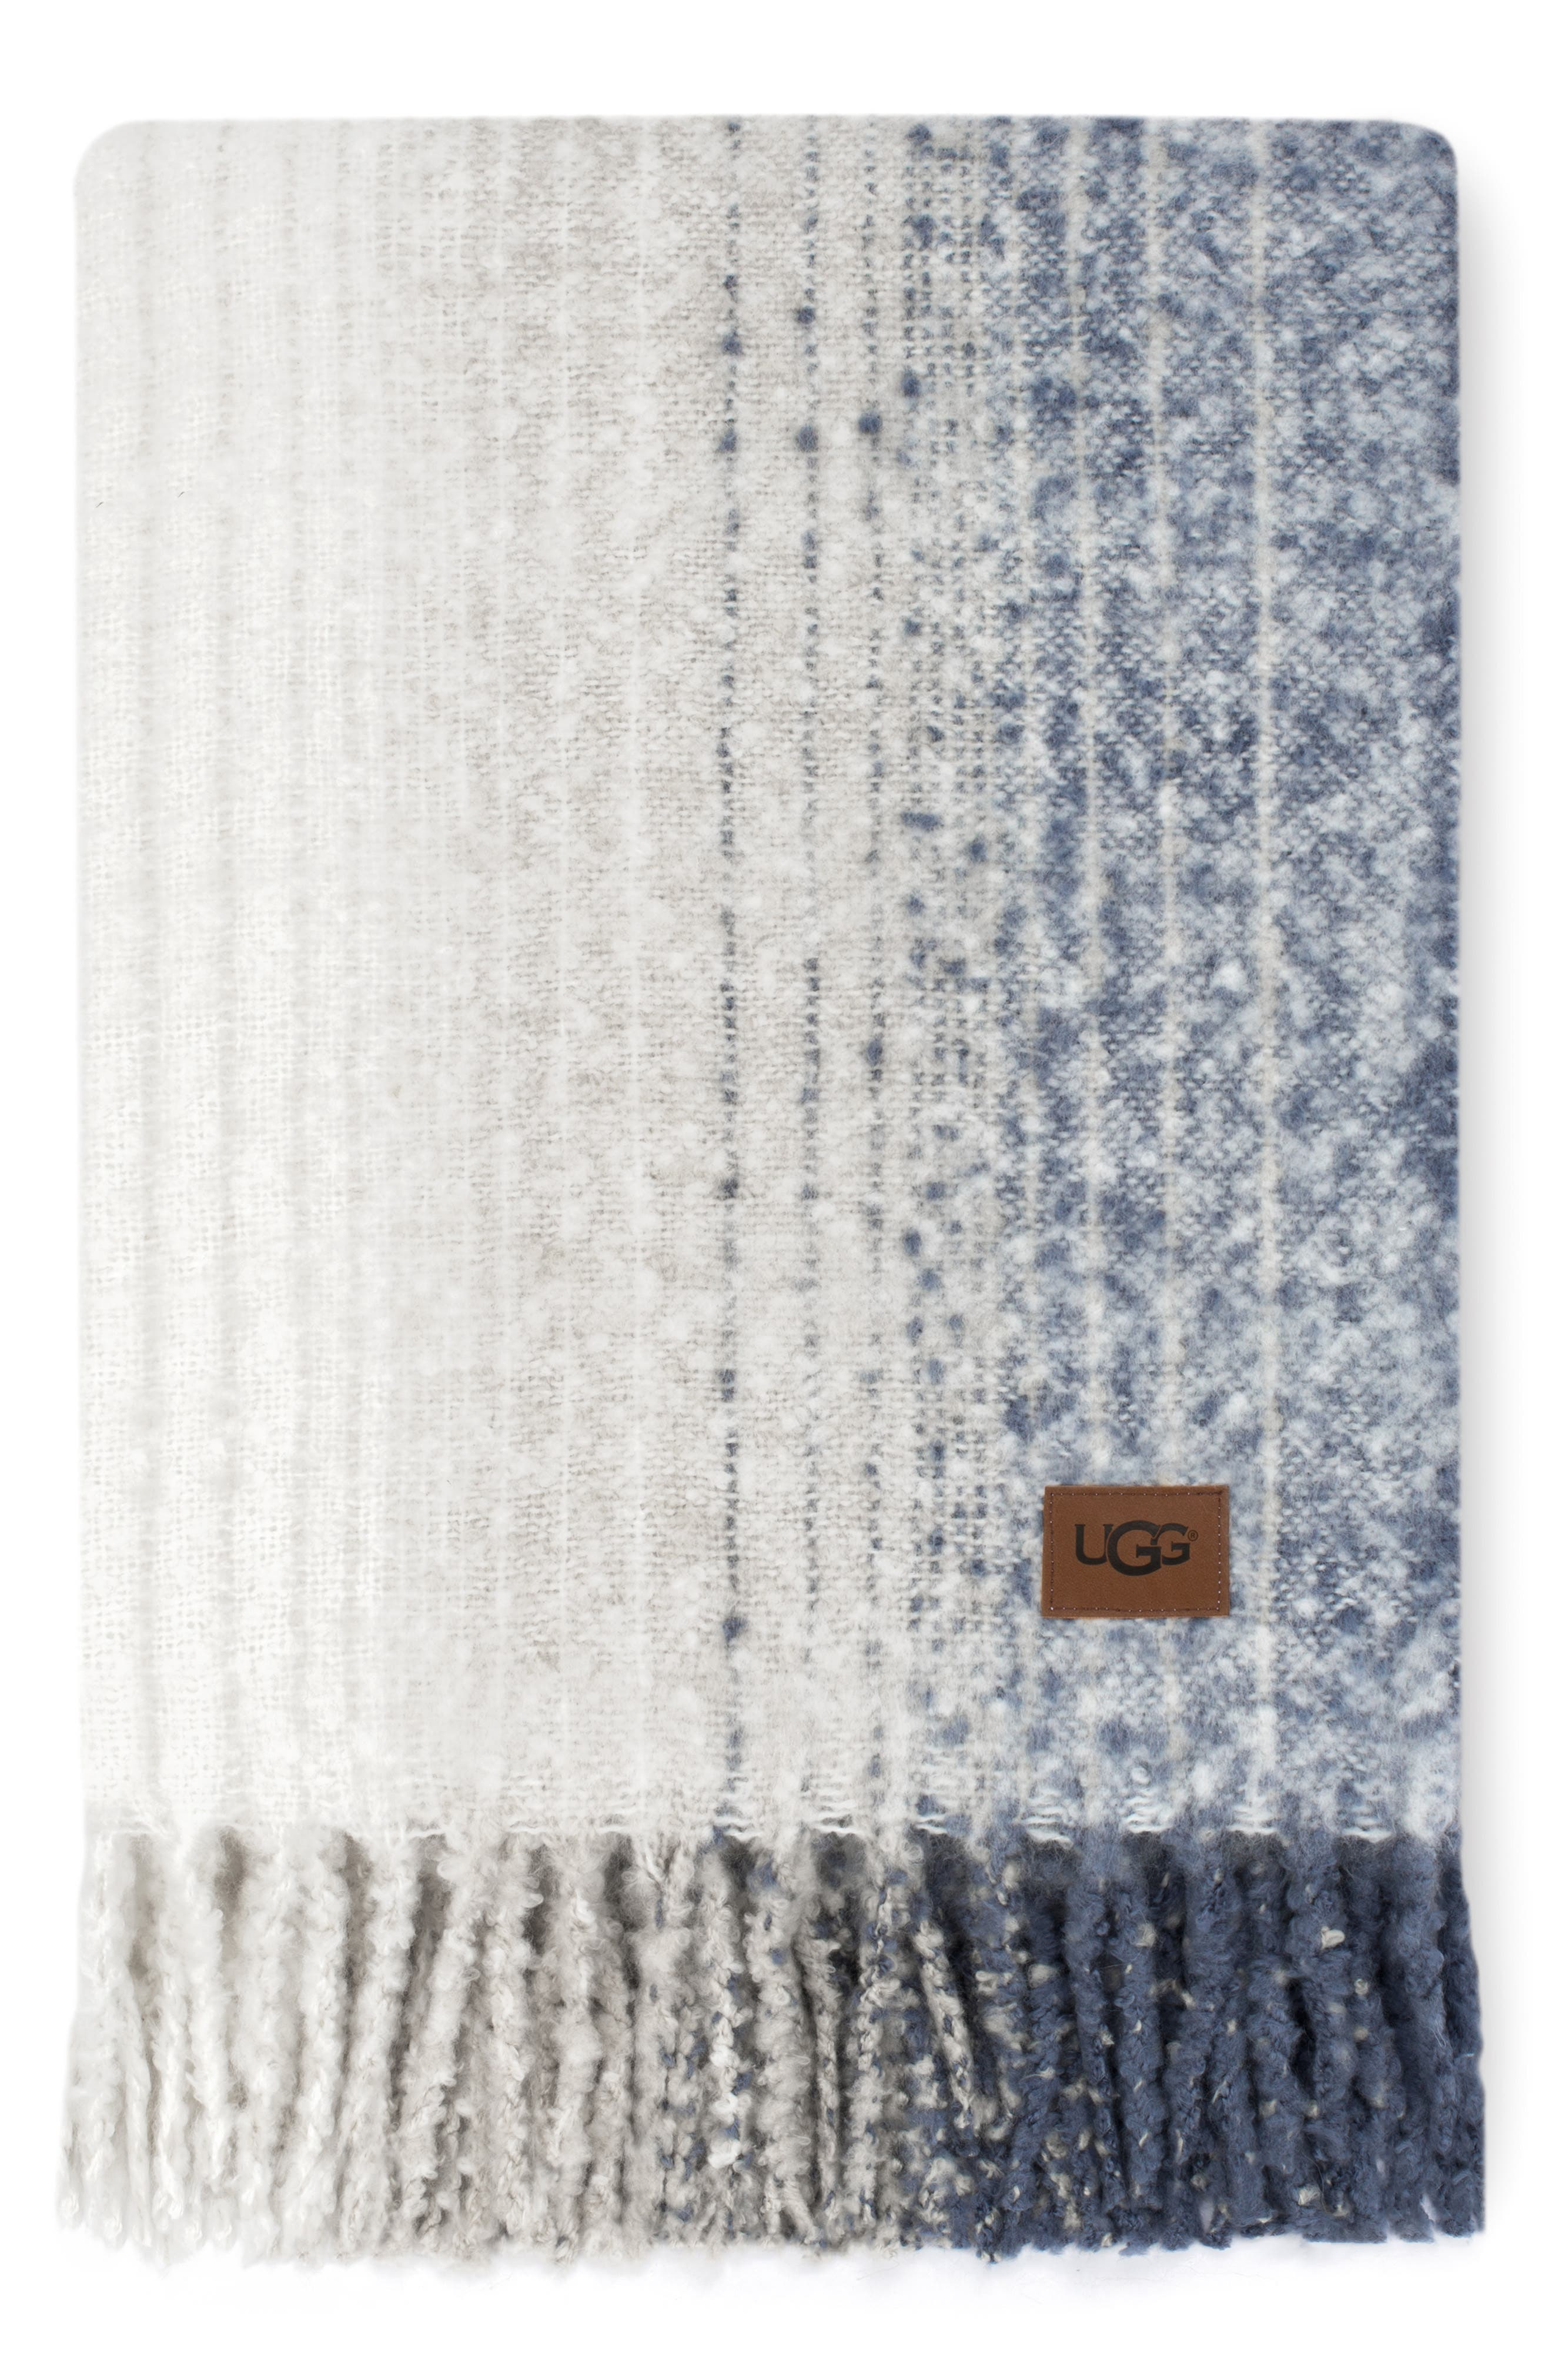 Moonlight Throw Blanket,                         Main,                         color, STONE/DENIM